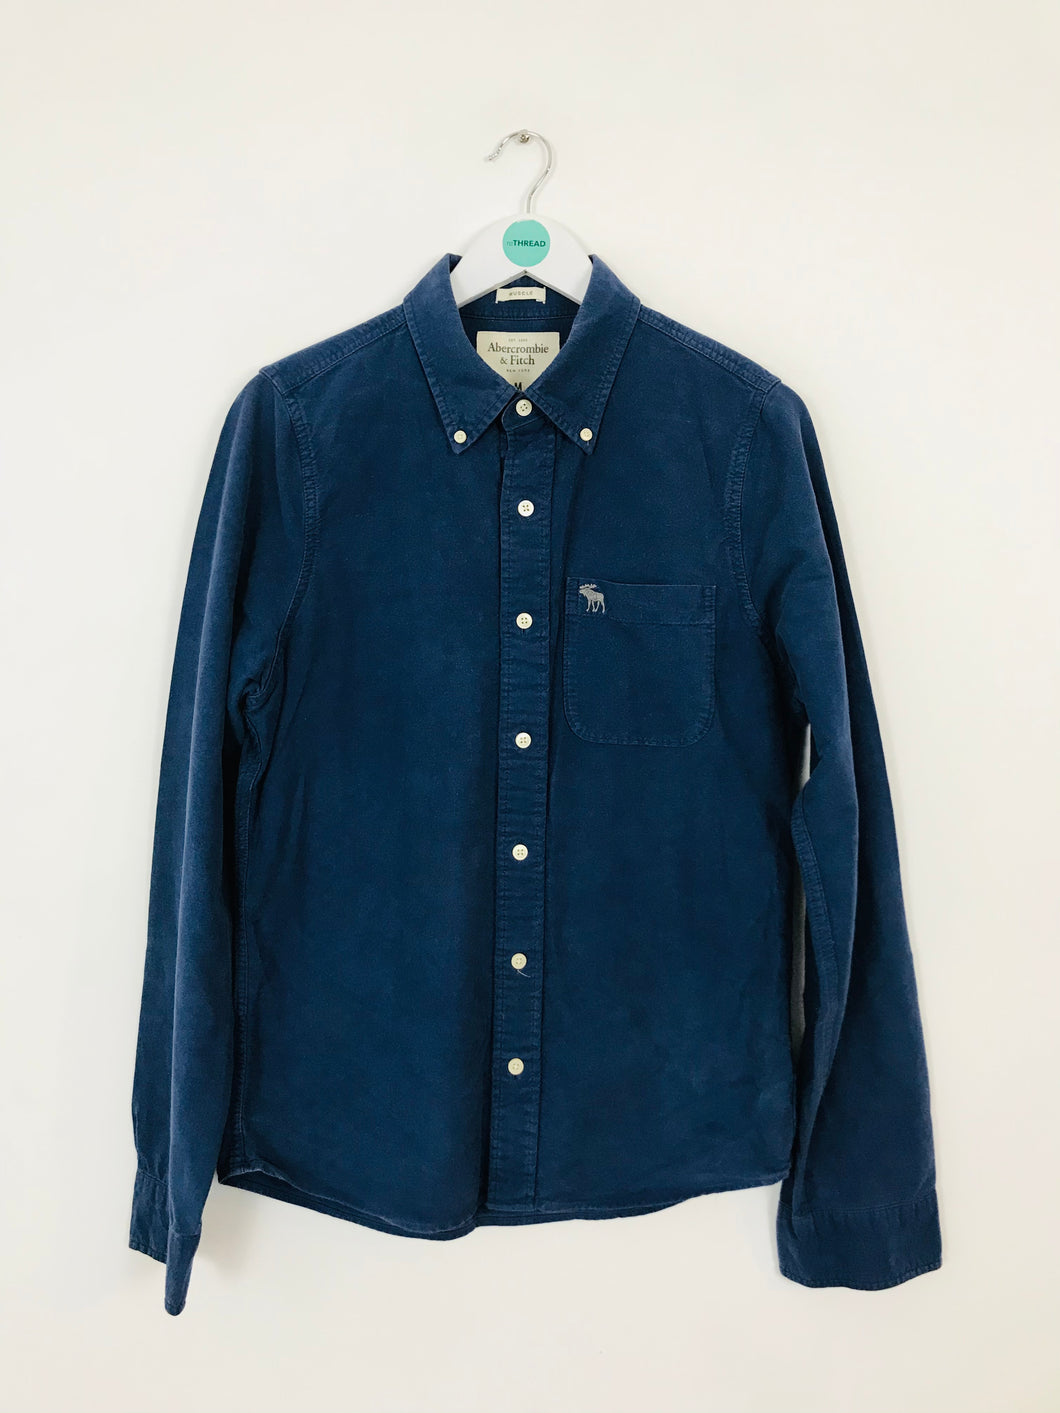 Abercrombie & Fitch Men's Long Sleeve Shirt | M | Navy Blue